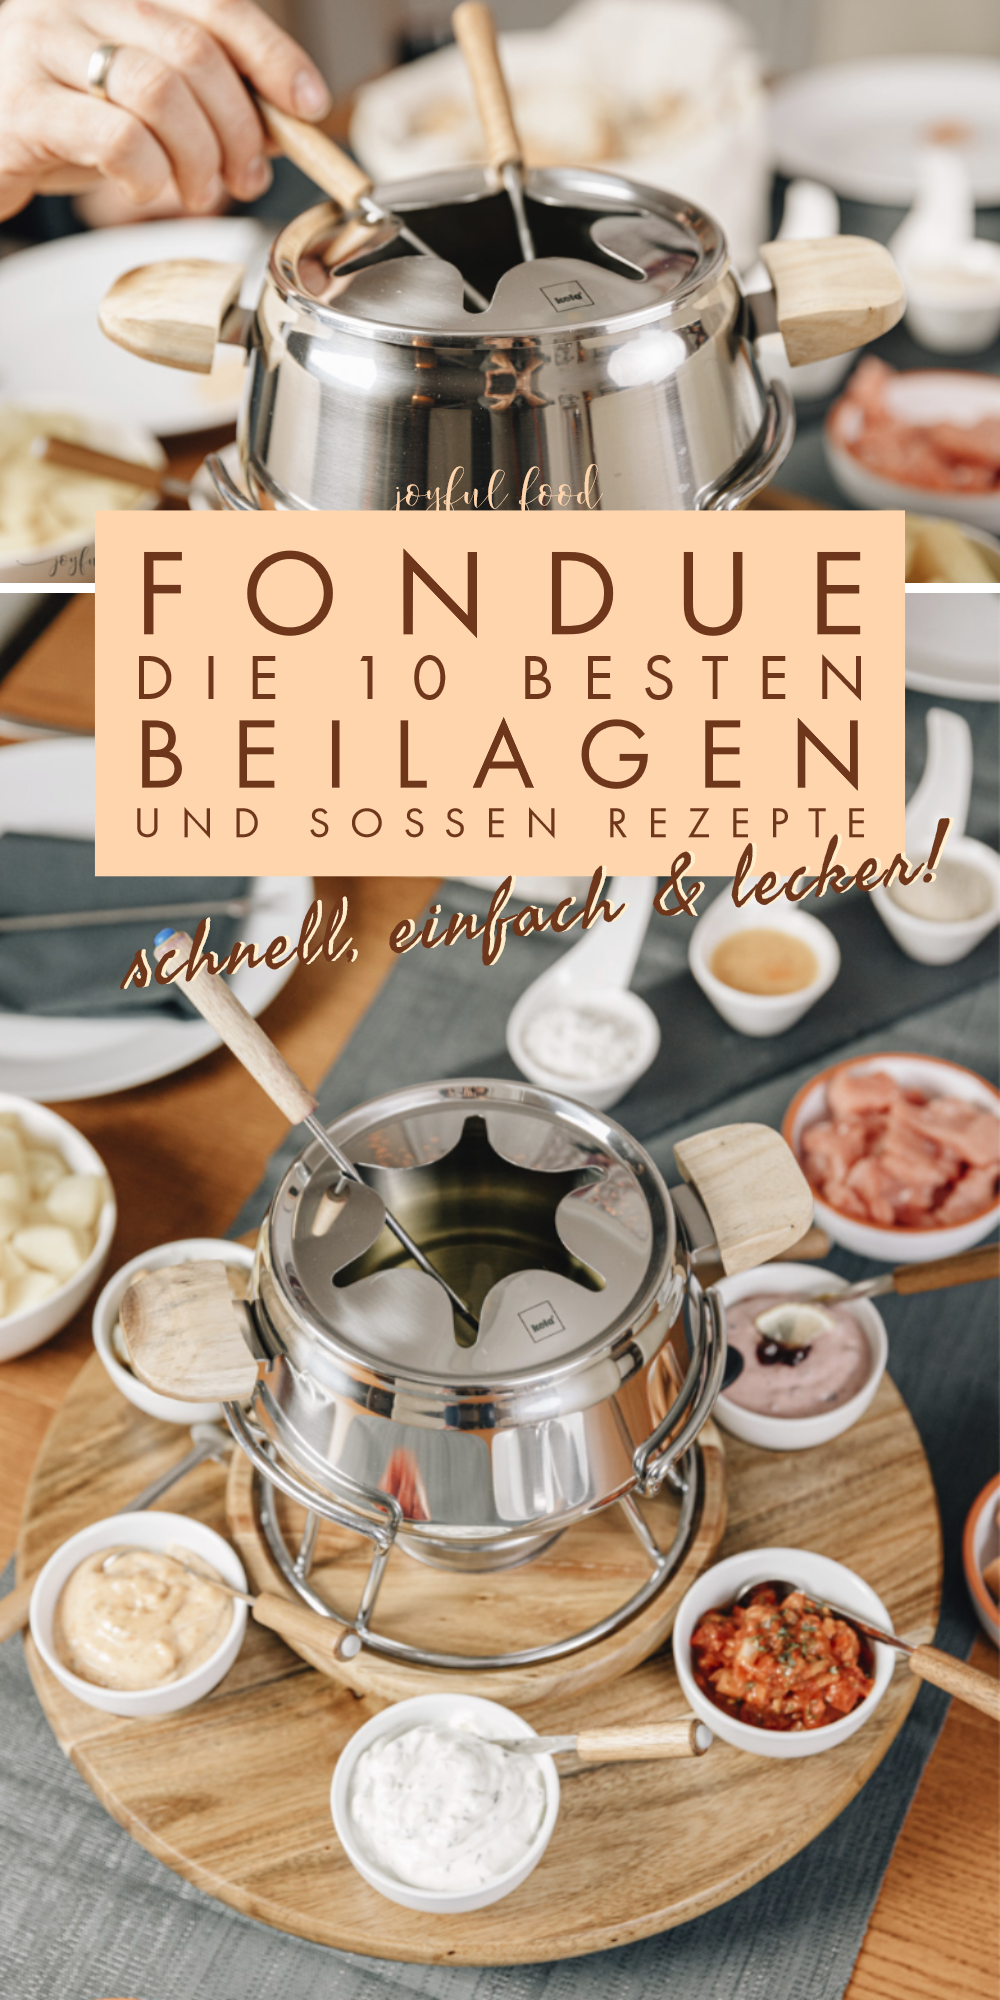 Hot Oil Fondue | Beer Cuisine | Cooking with Beer | Eat Beer |Fondue Sides Ideas